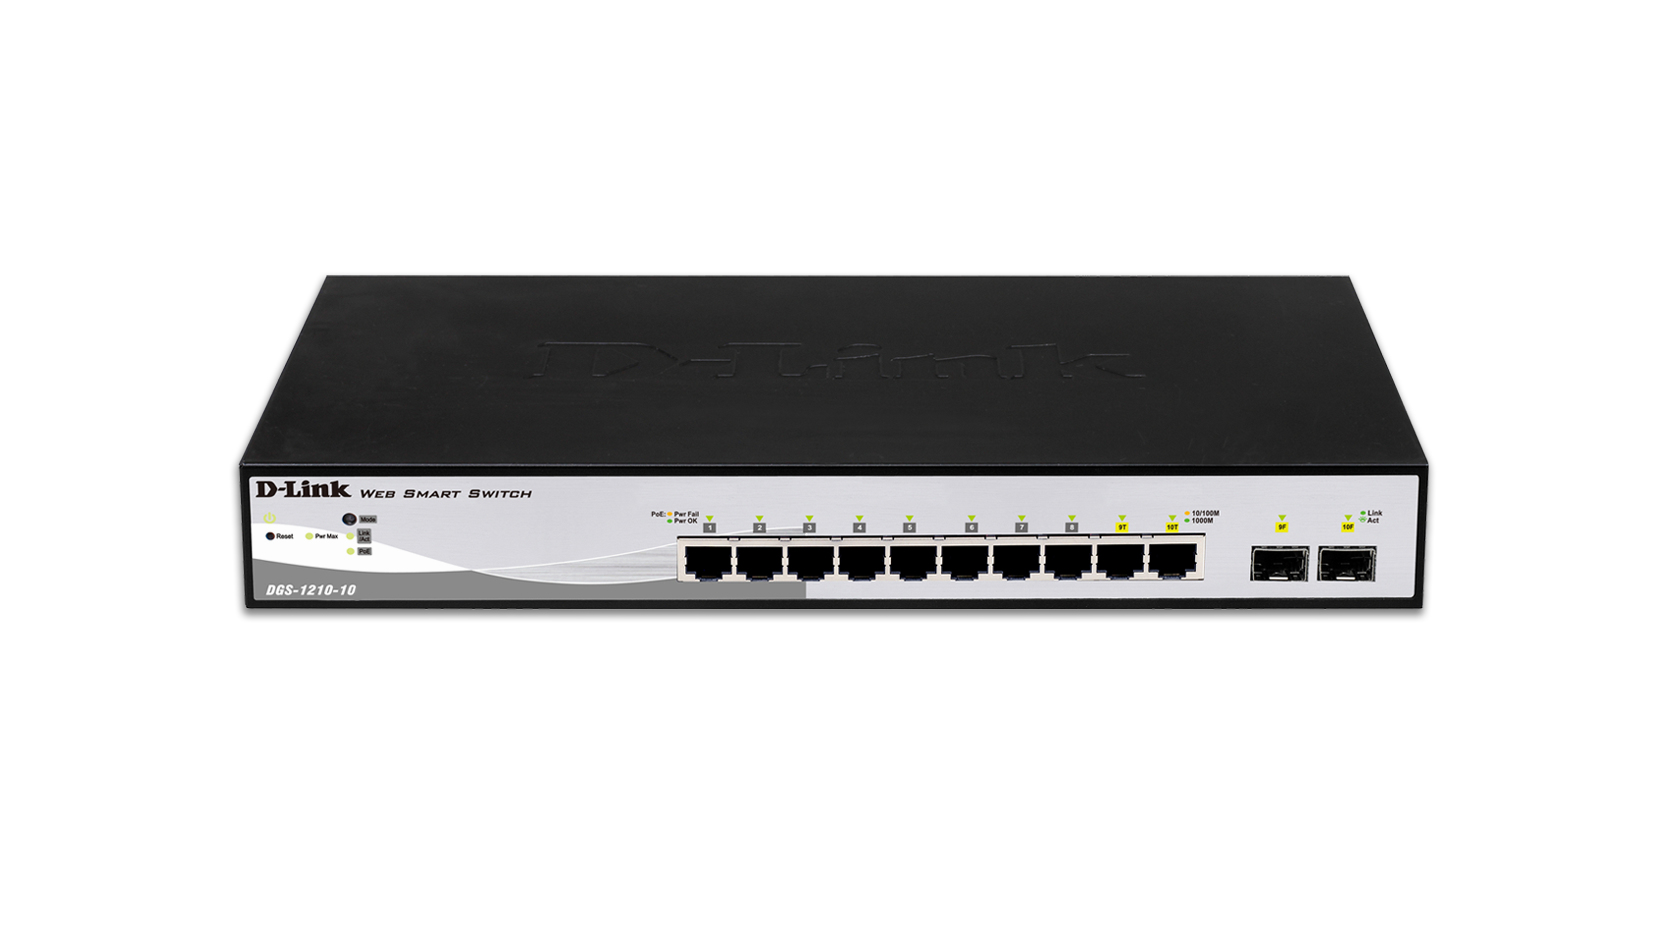 10-Port Gigabit Smart Switch With 2 SFP Ports DGS-1210-10 - C2000